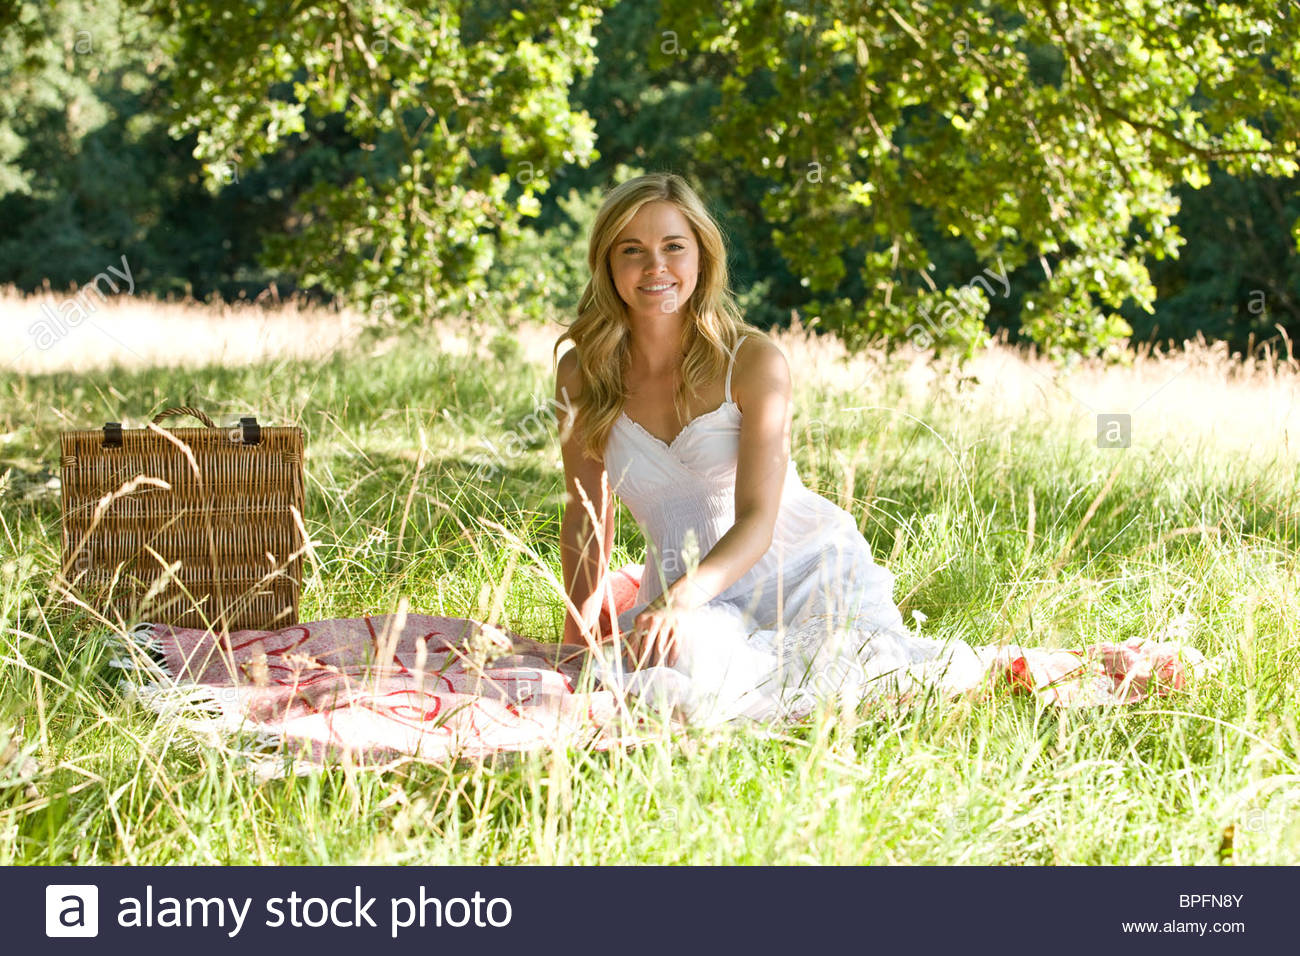 A young woman sitting on a picnic blanket - Stock Image